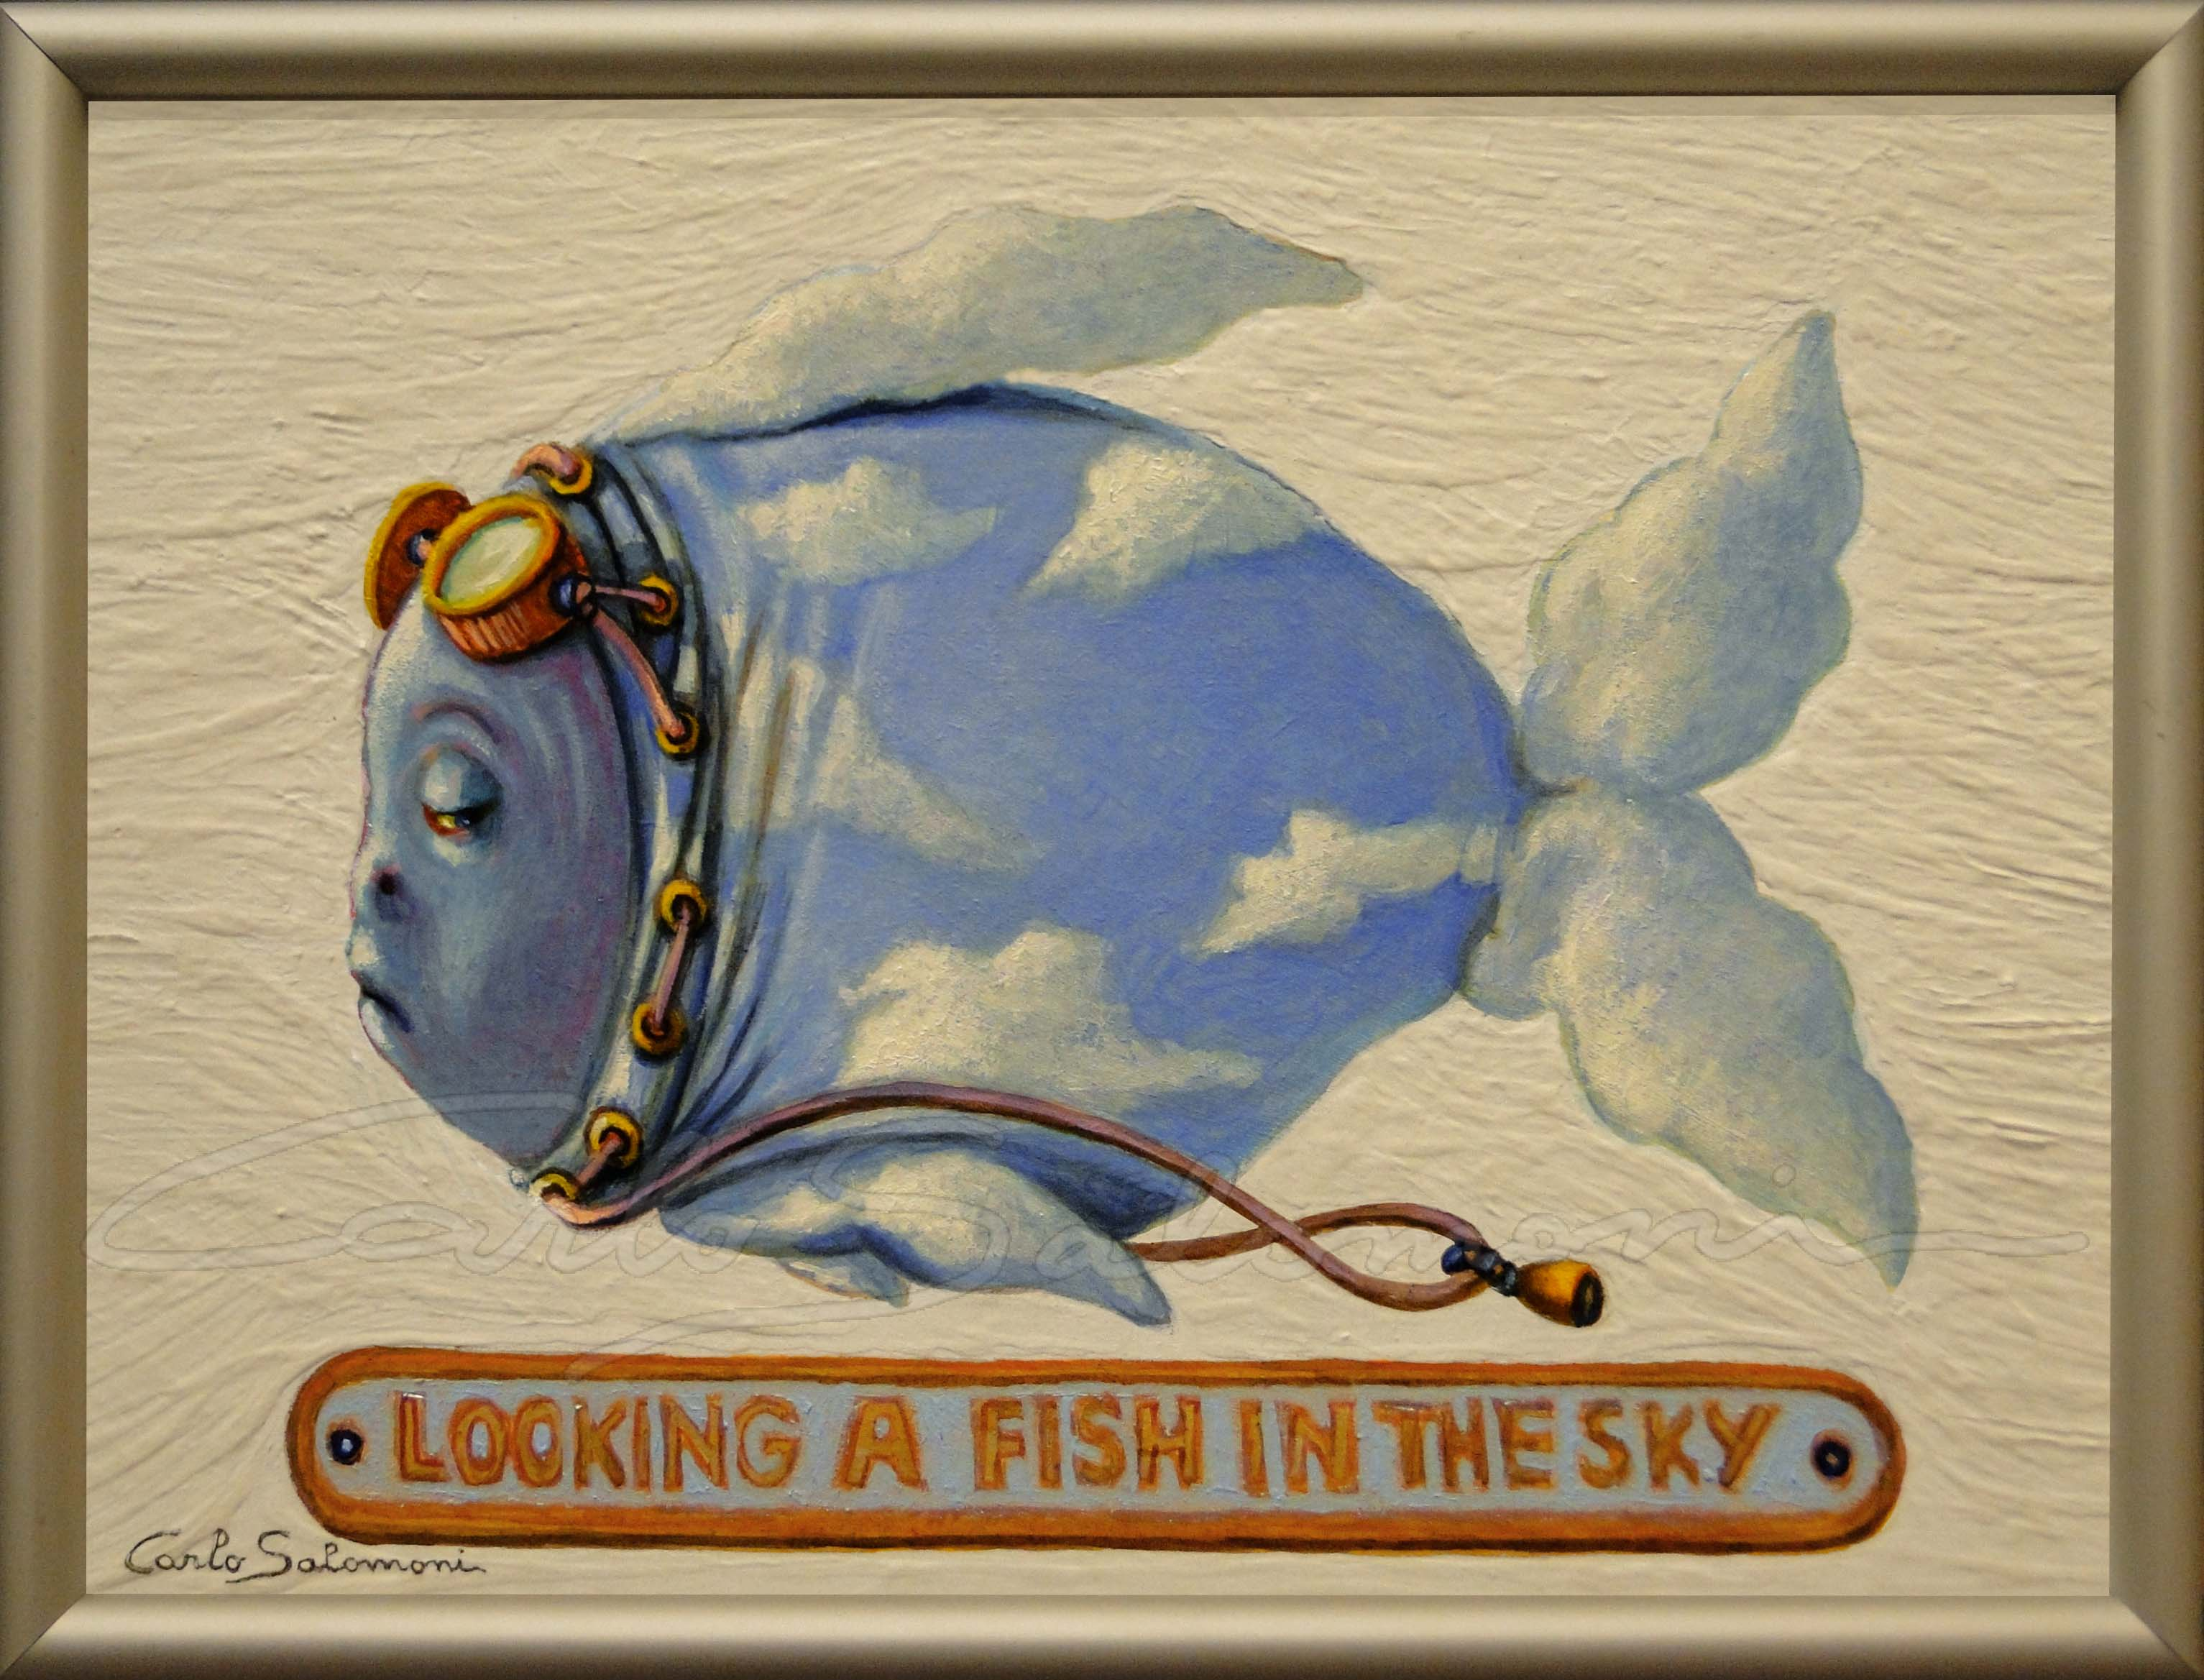 LOOKING A FISH IN THE SKY